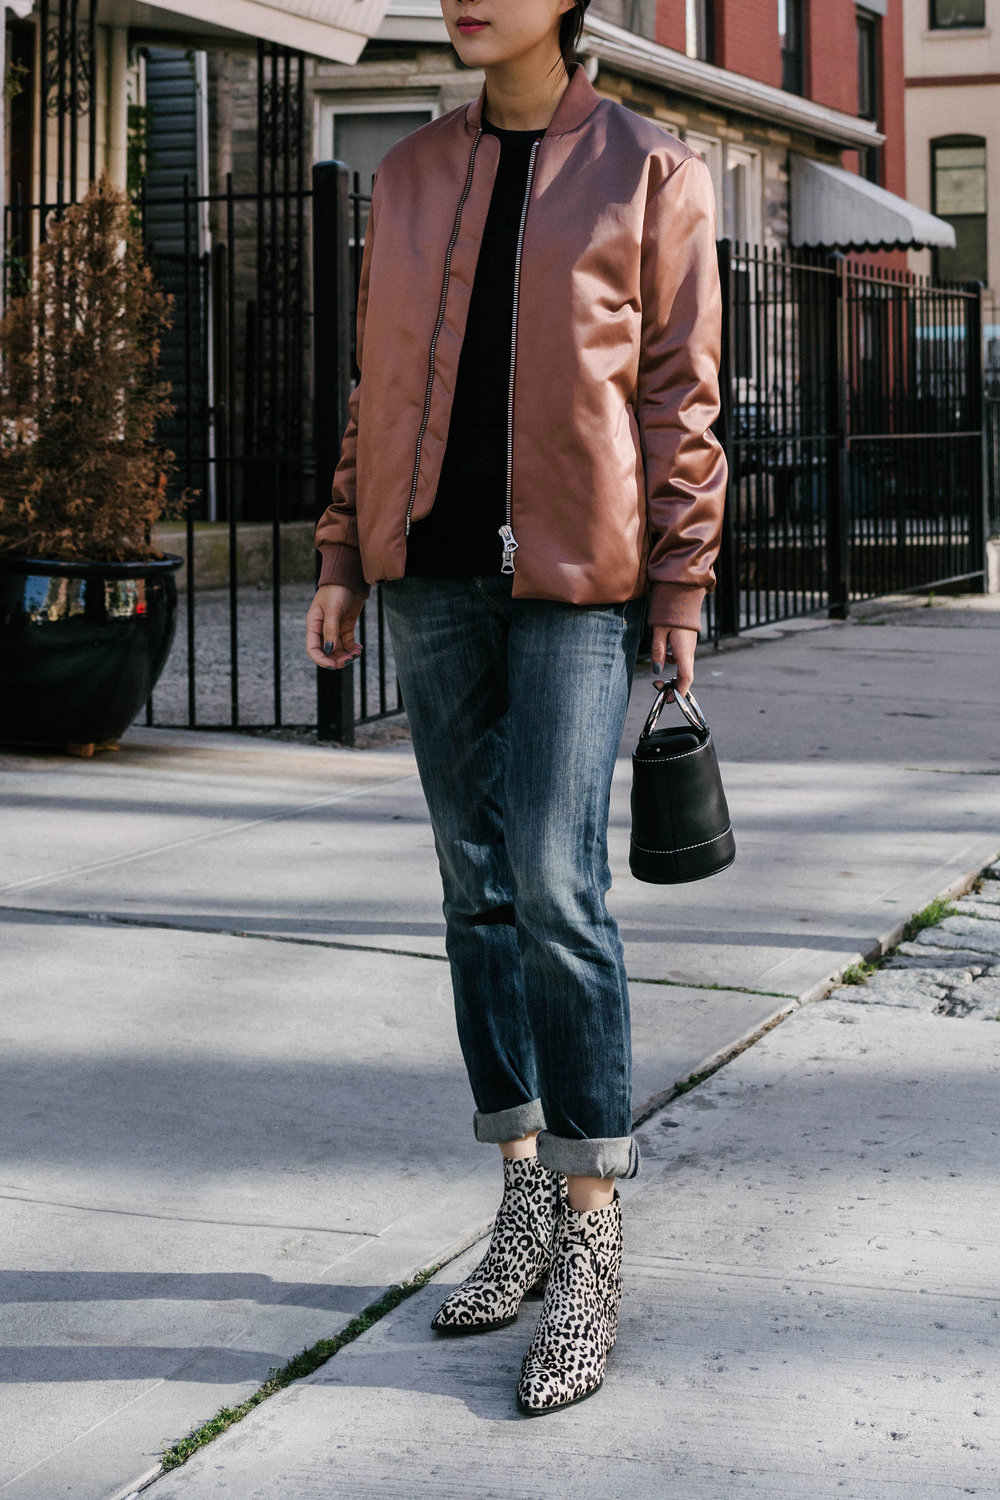 Acne Studios Jacket, R13 Denim, Senso Boots, Simon Miller Bag (bigger size)